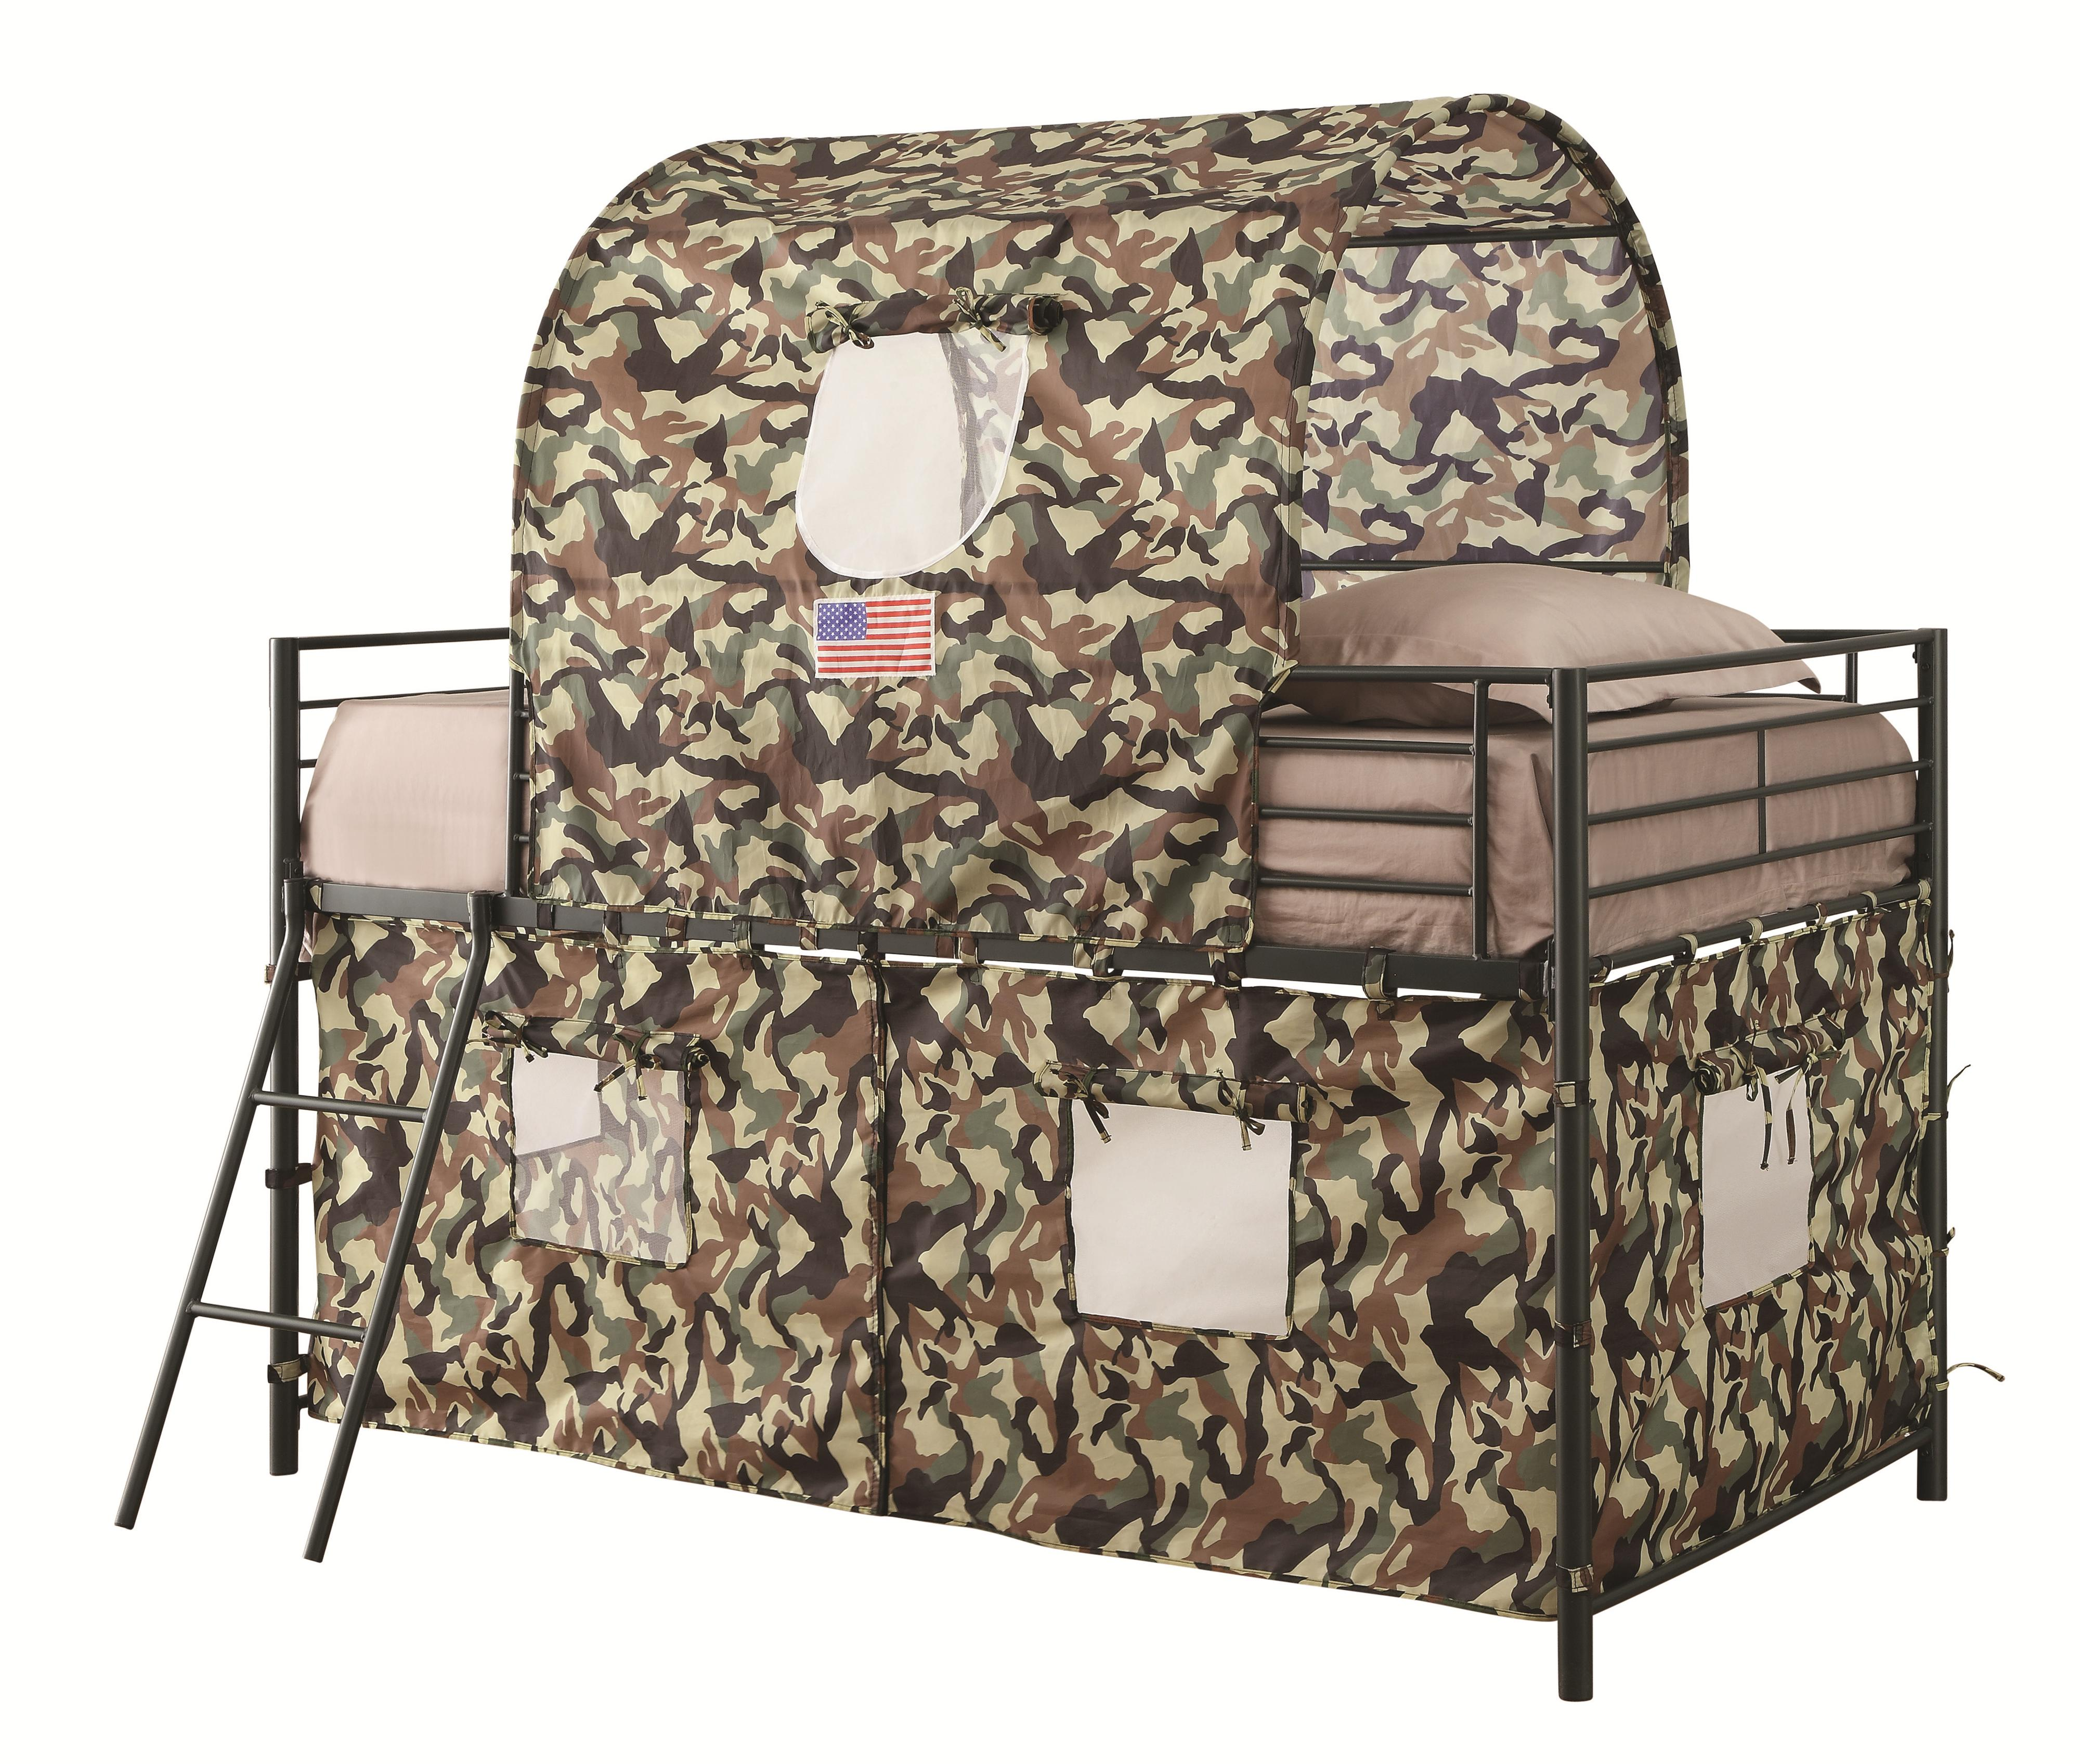 Coaster Furniture Camouflage Army Green Tent Bunk Bed The Classy Home